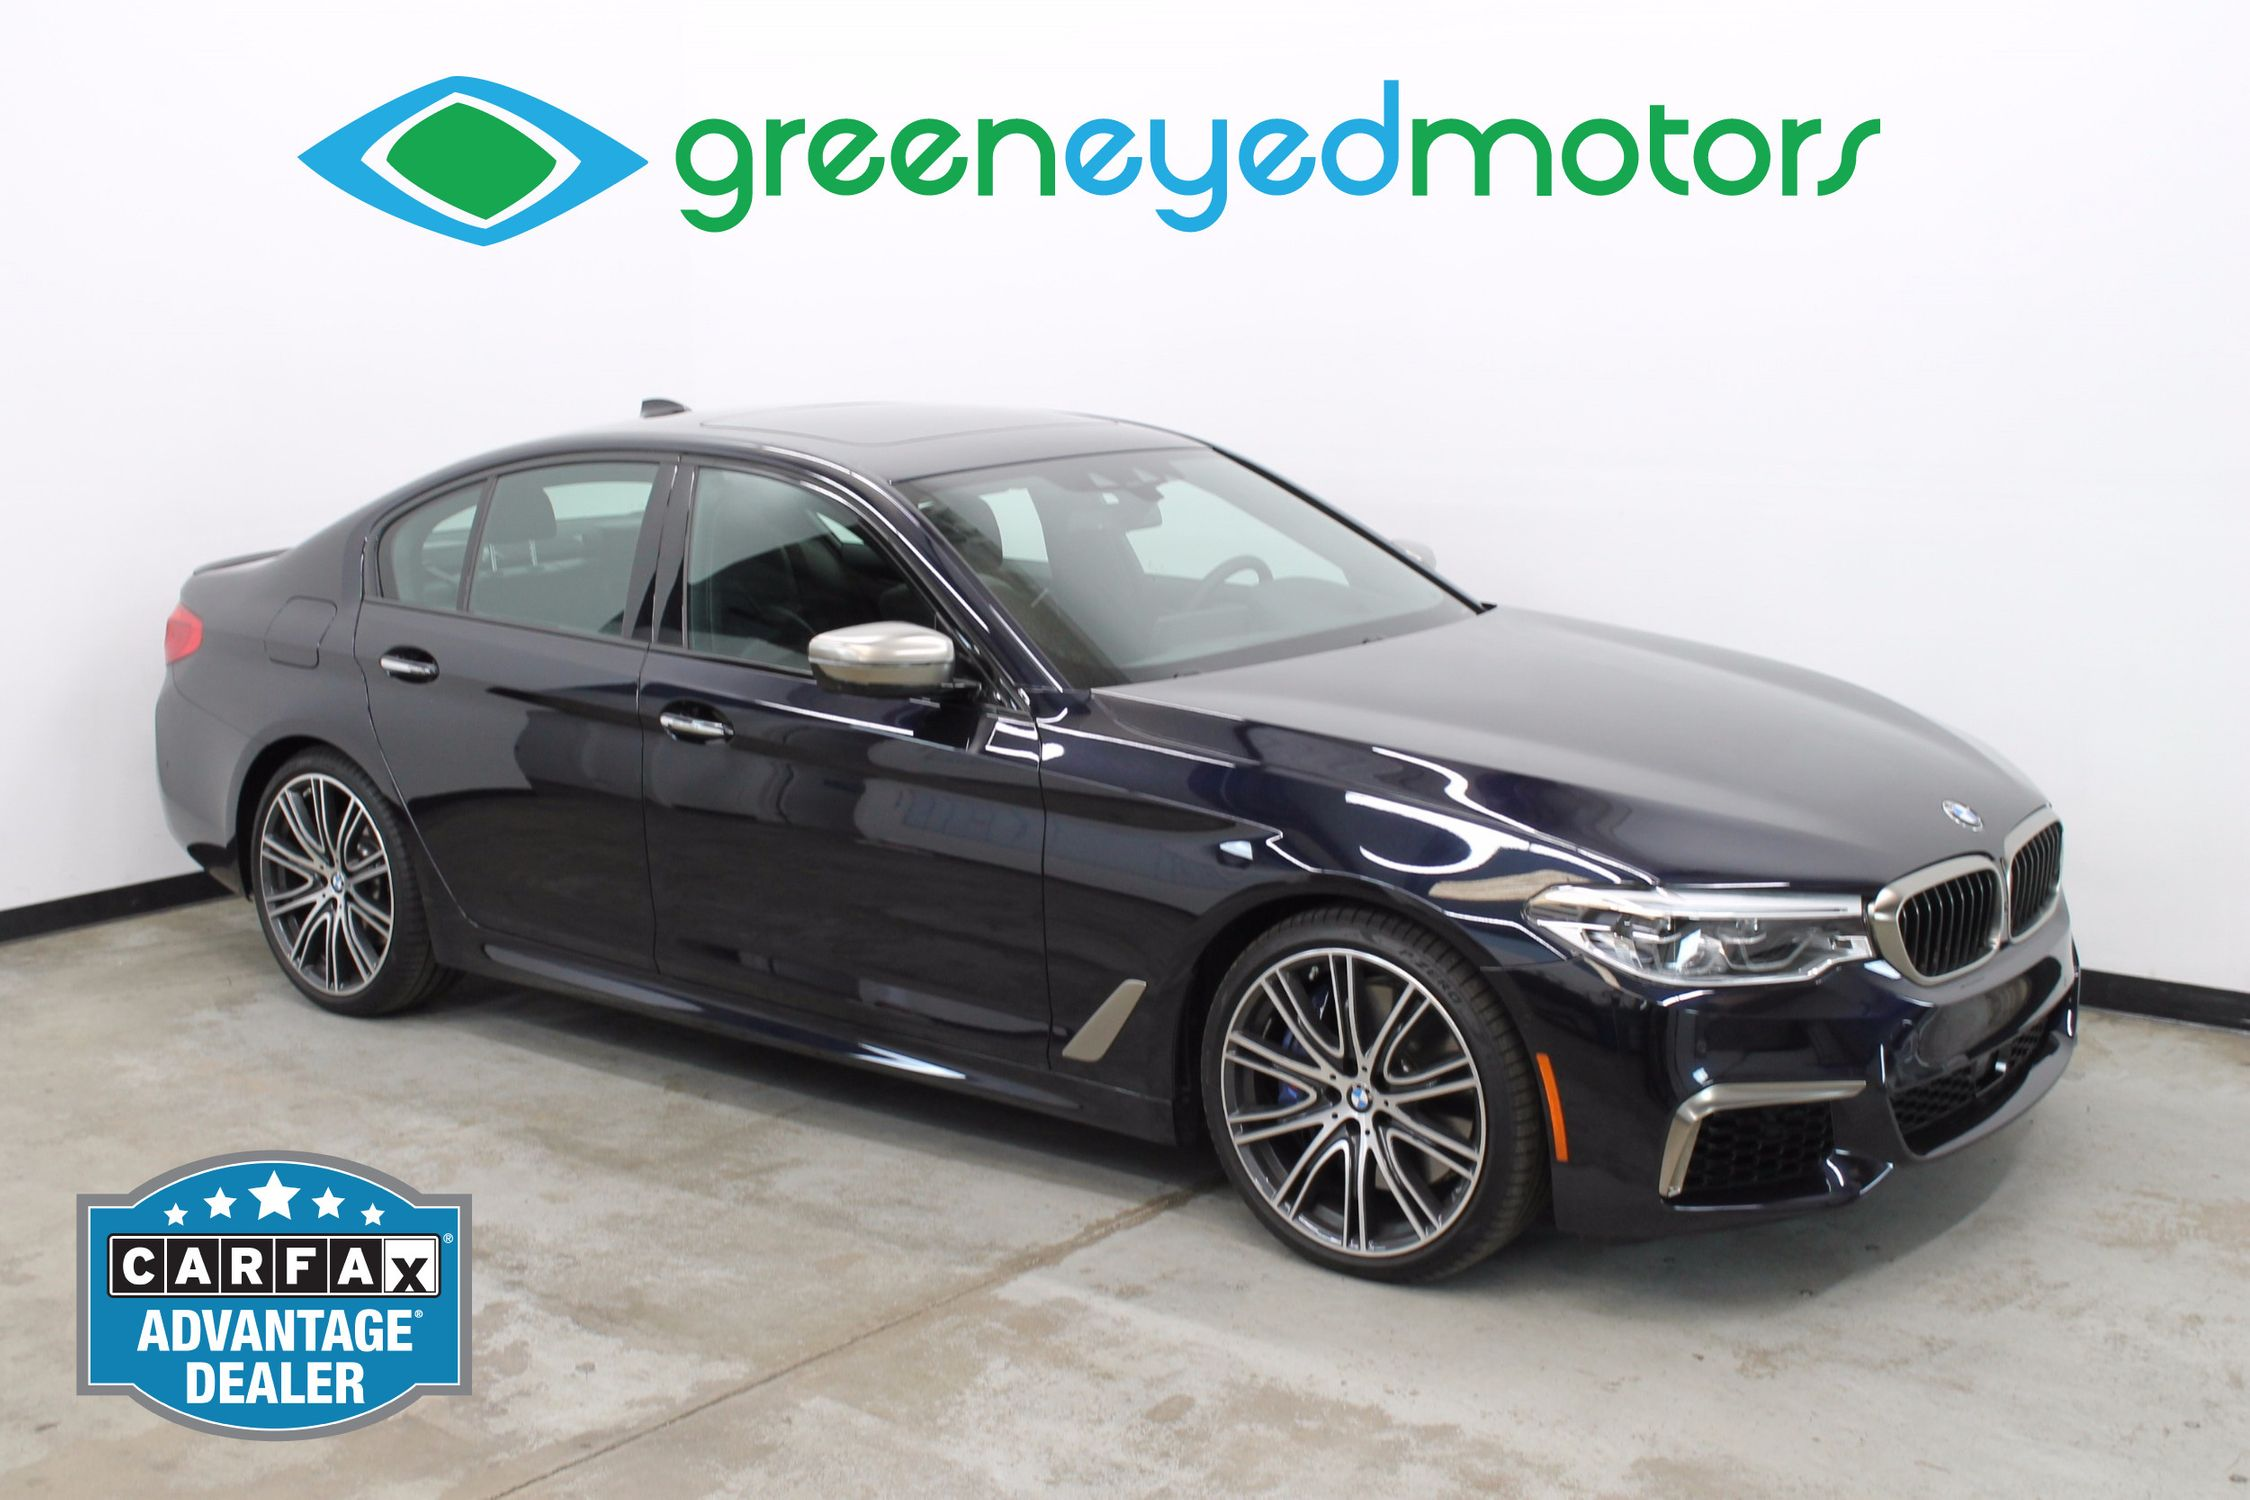 2018 Bmw 5 Series M550i Xdrive Green Eyed Motors